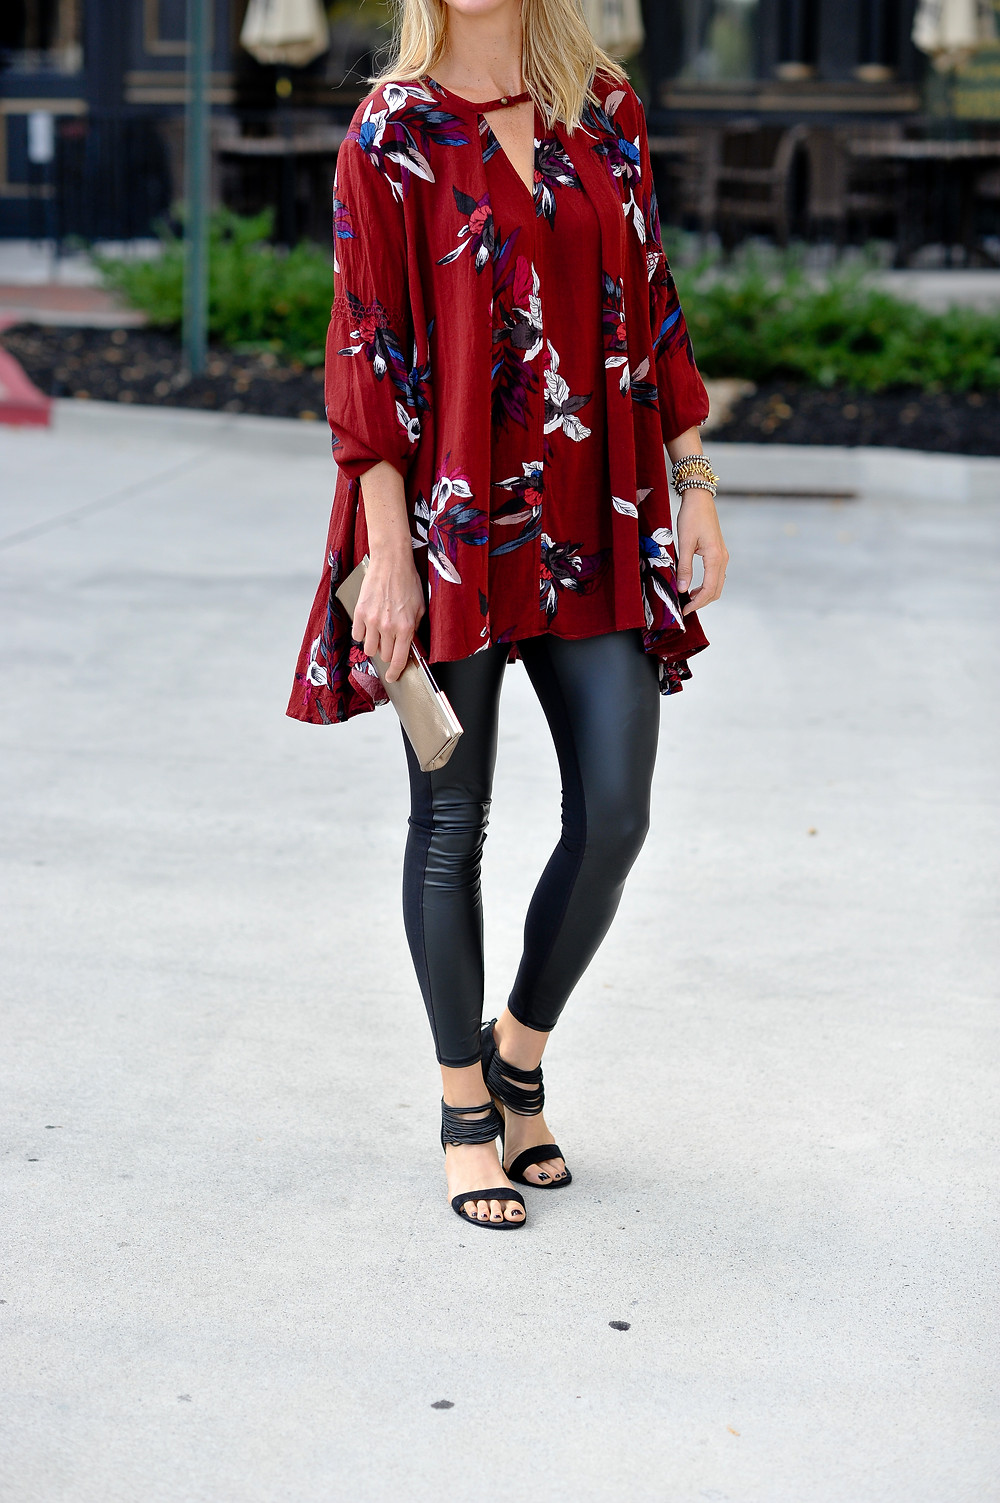 Faux leather legging outfit ideas